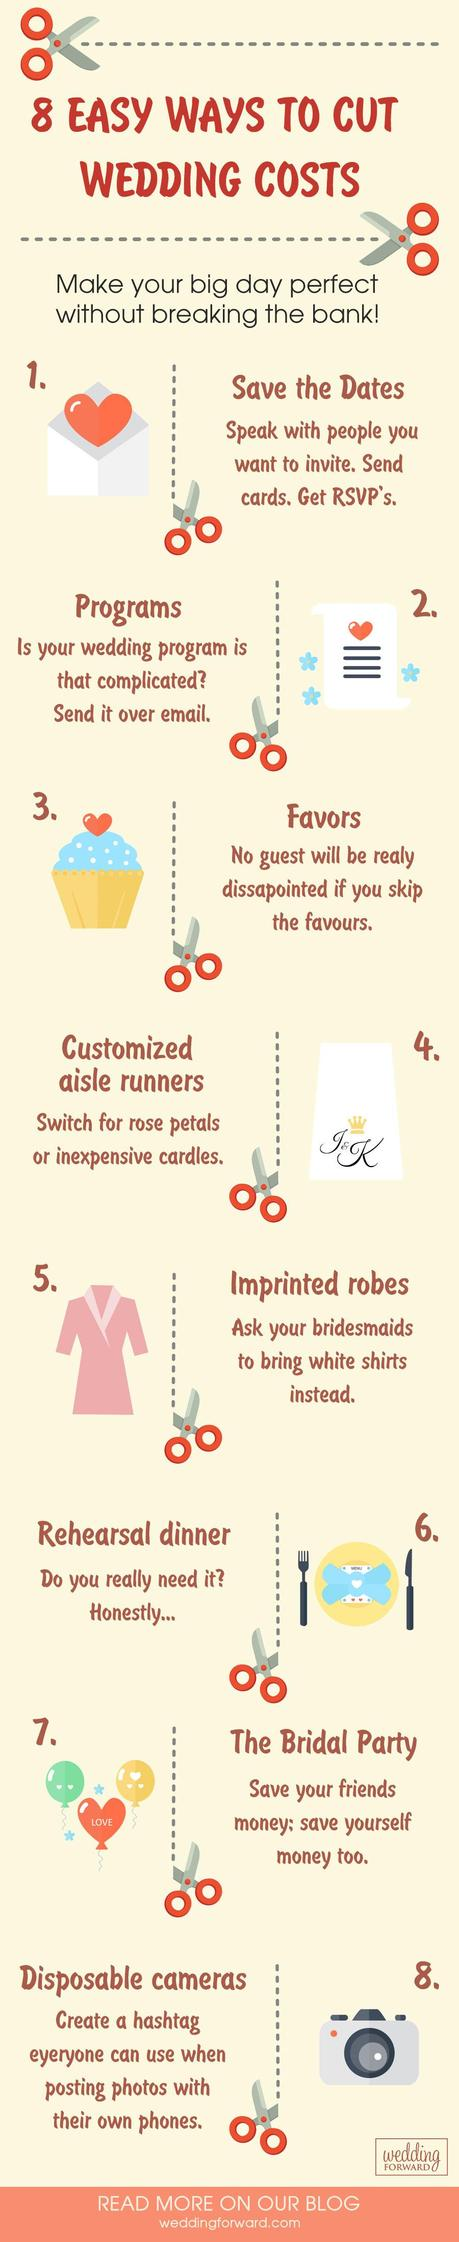 things to cut from your wedding and best wedding freebies saving money